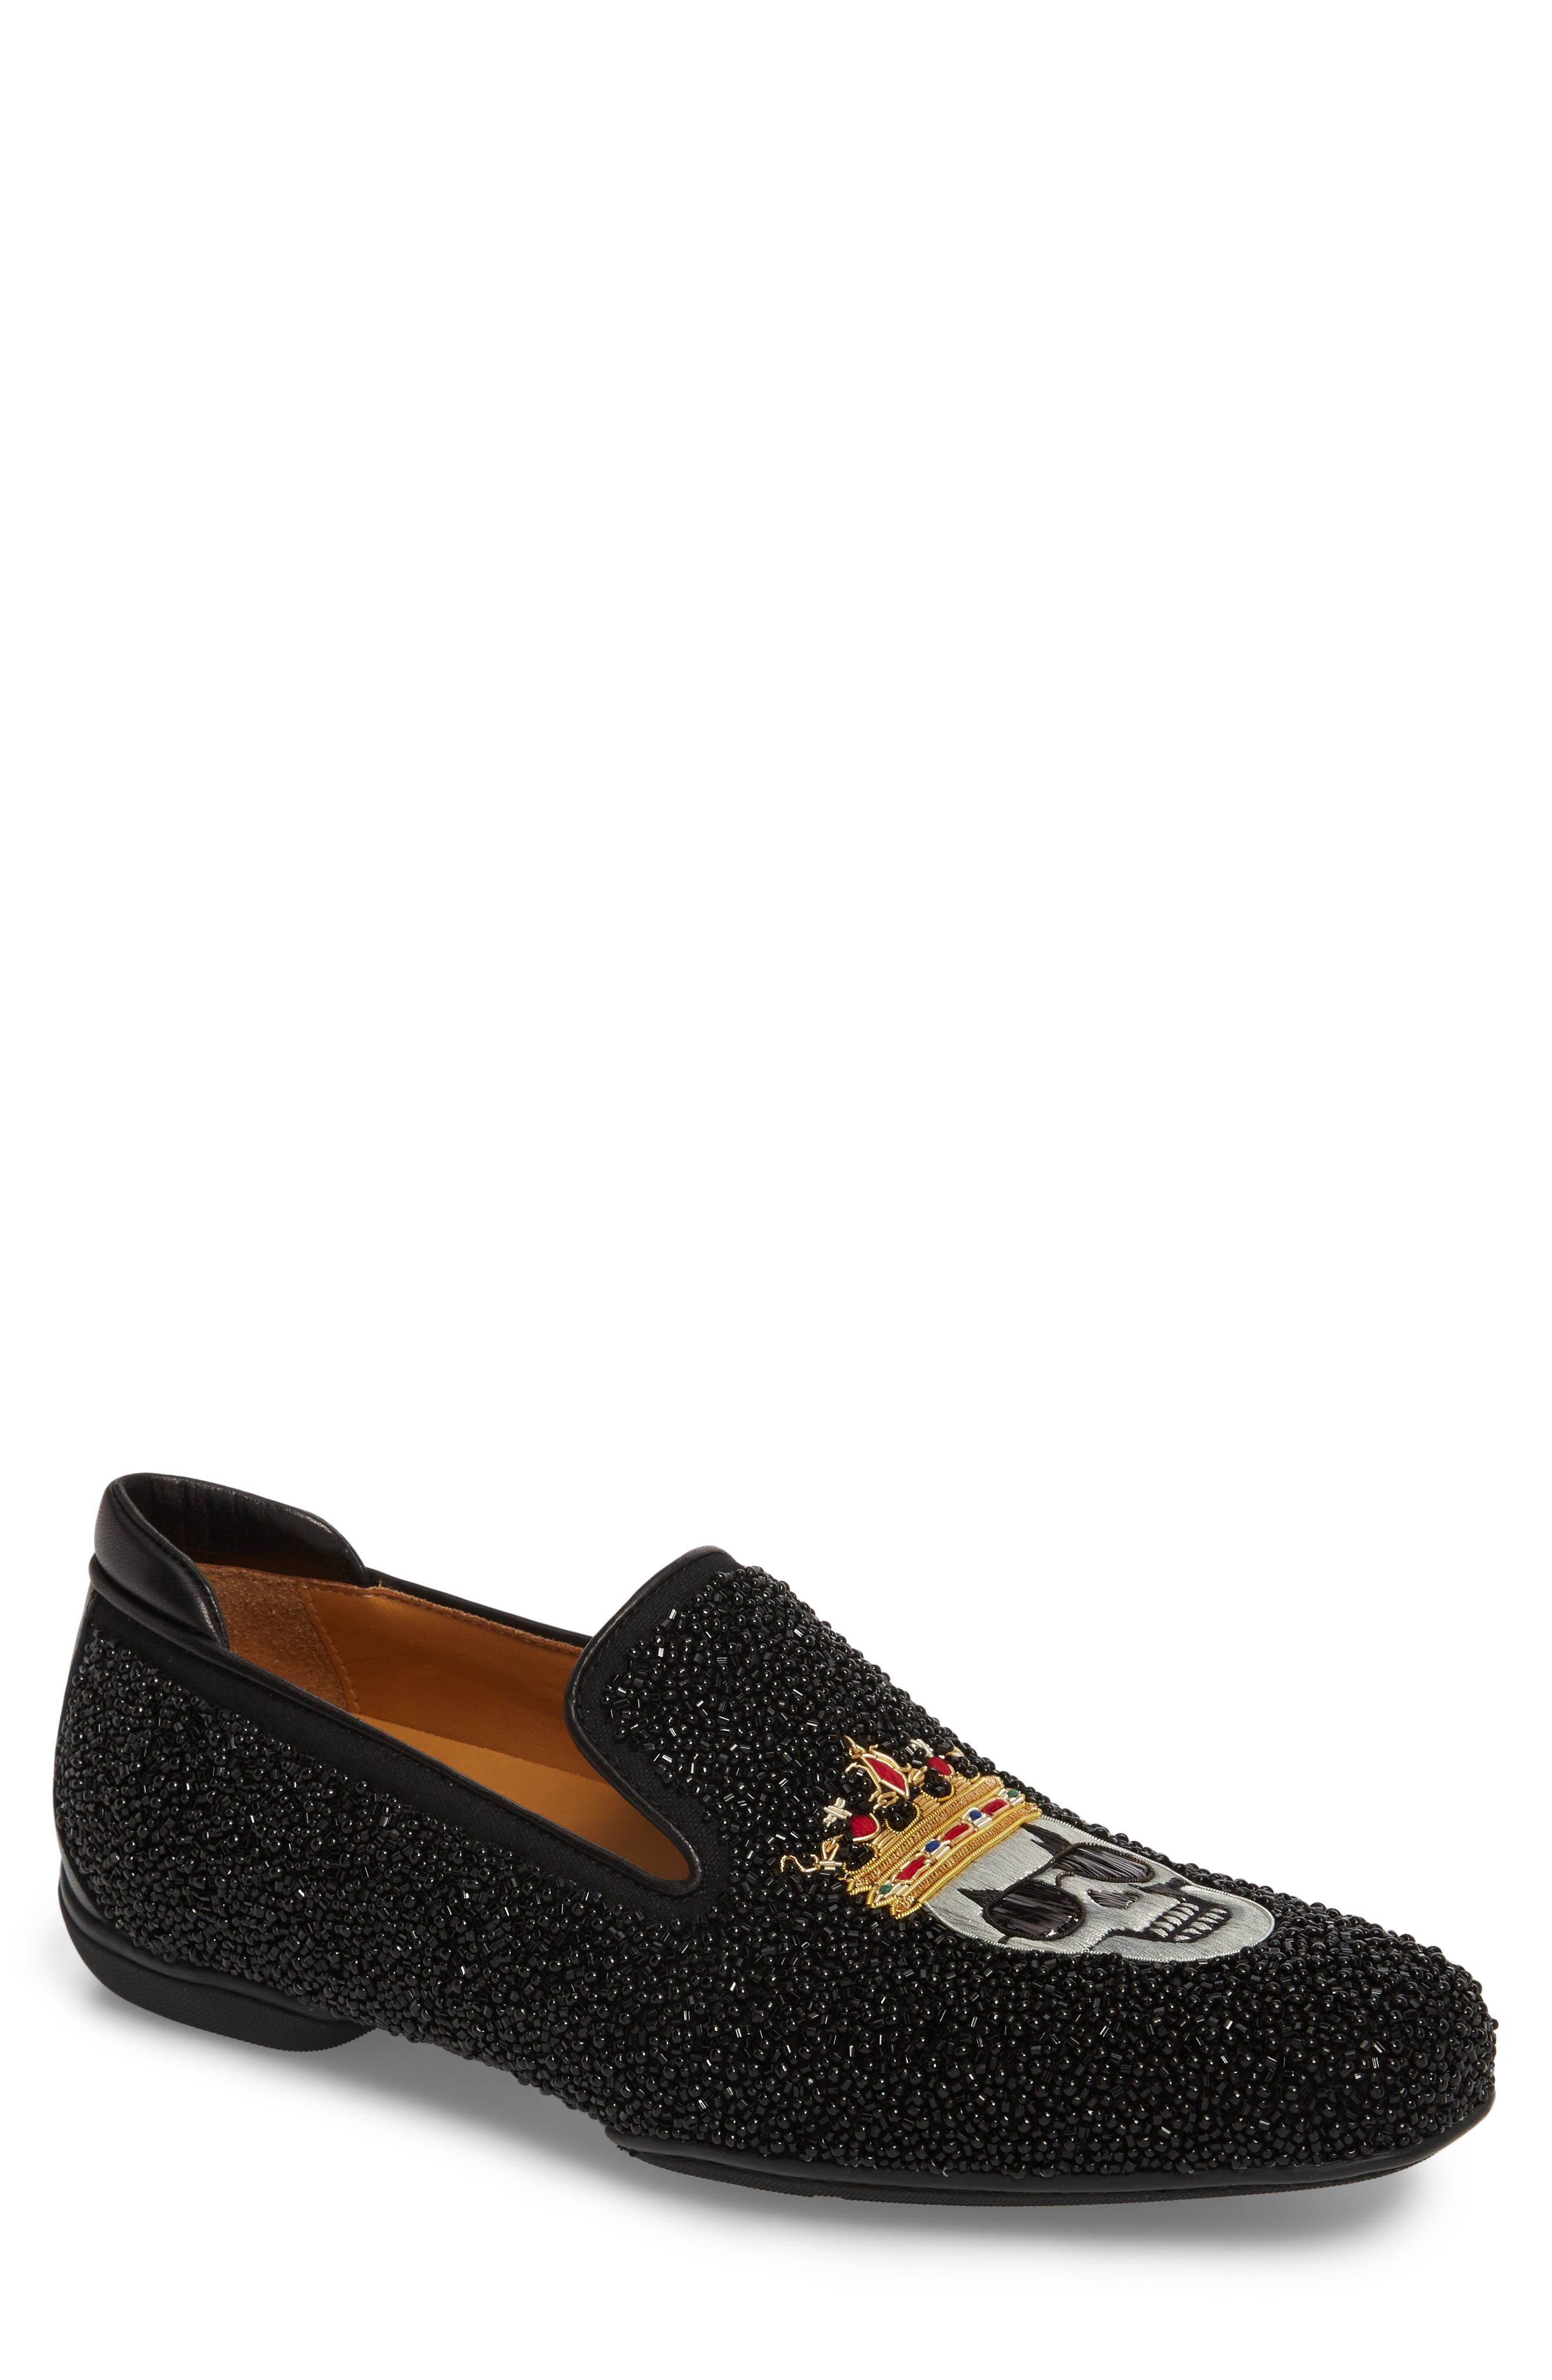 Verge Venetian Loafer,                         Main,                         color, 019